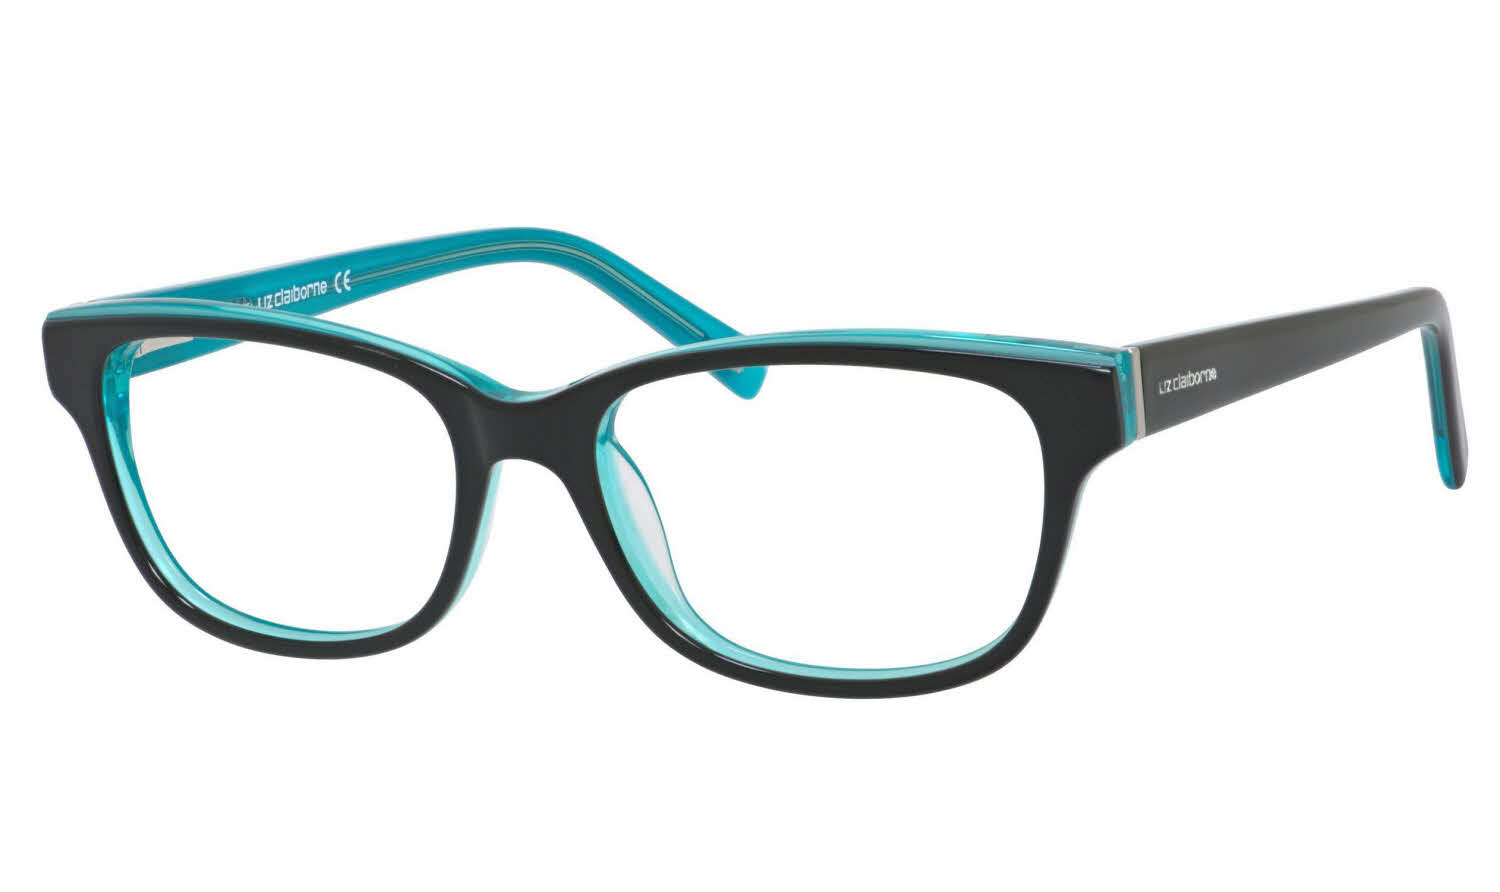 latest style eyeglasses  New Women\u0027s Prescription Eyeglasses: Latest Styles for a Woman